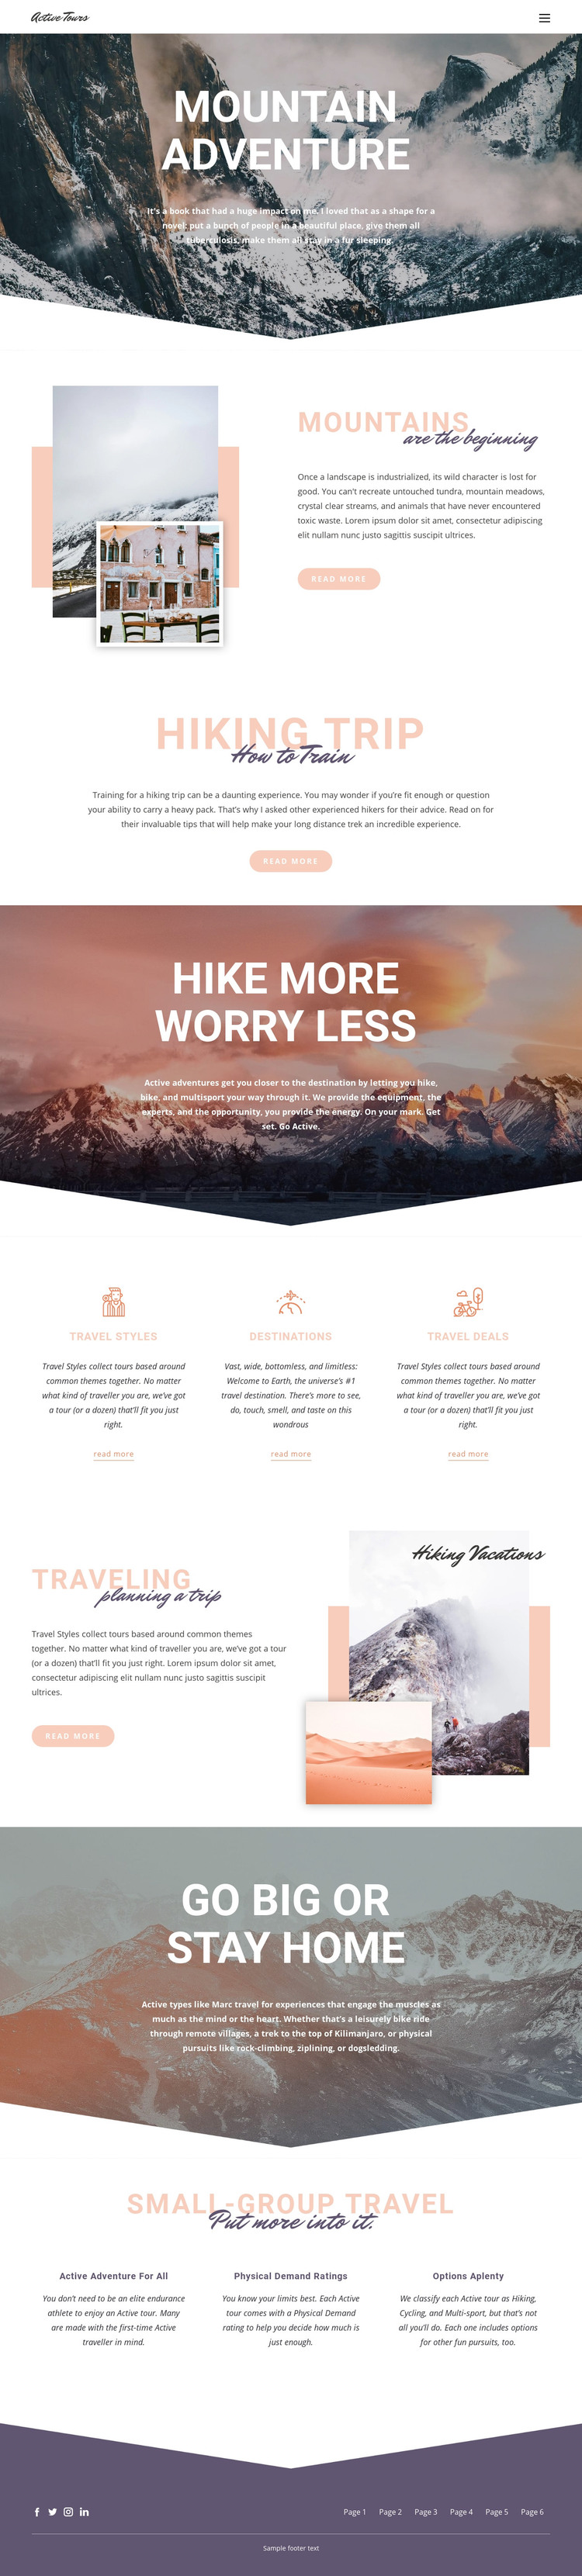 Mountain Adventure WordPress Website